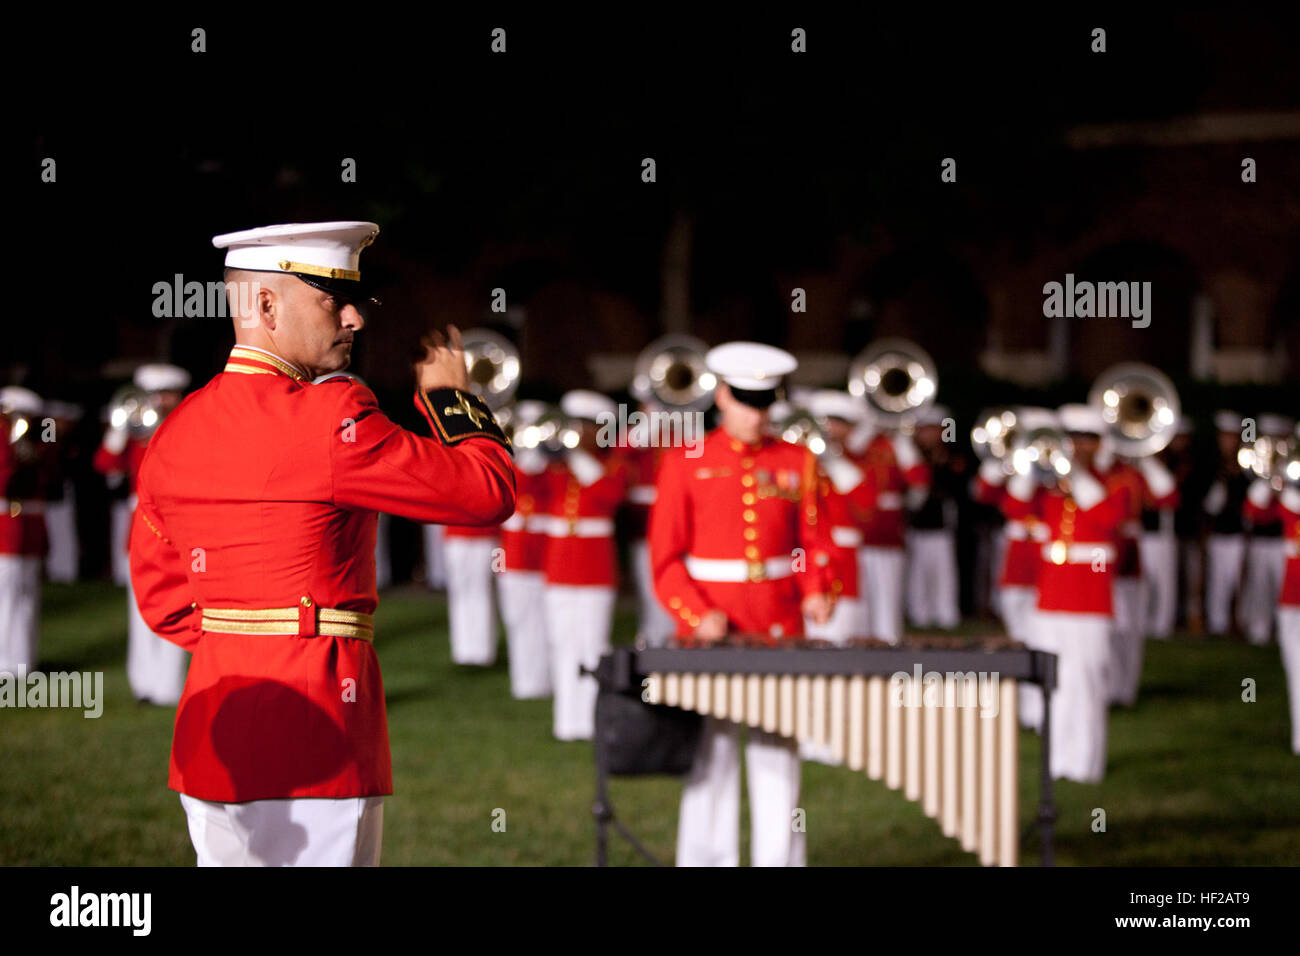 Members of the U.S. Marine Drum and Bugle Corps perform during an Evening Parade at Marine Barracks Washington in Stock Photo